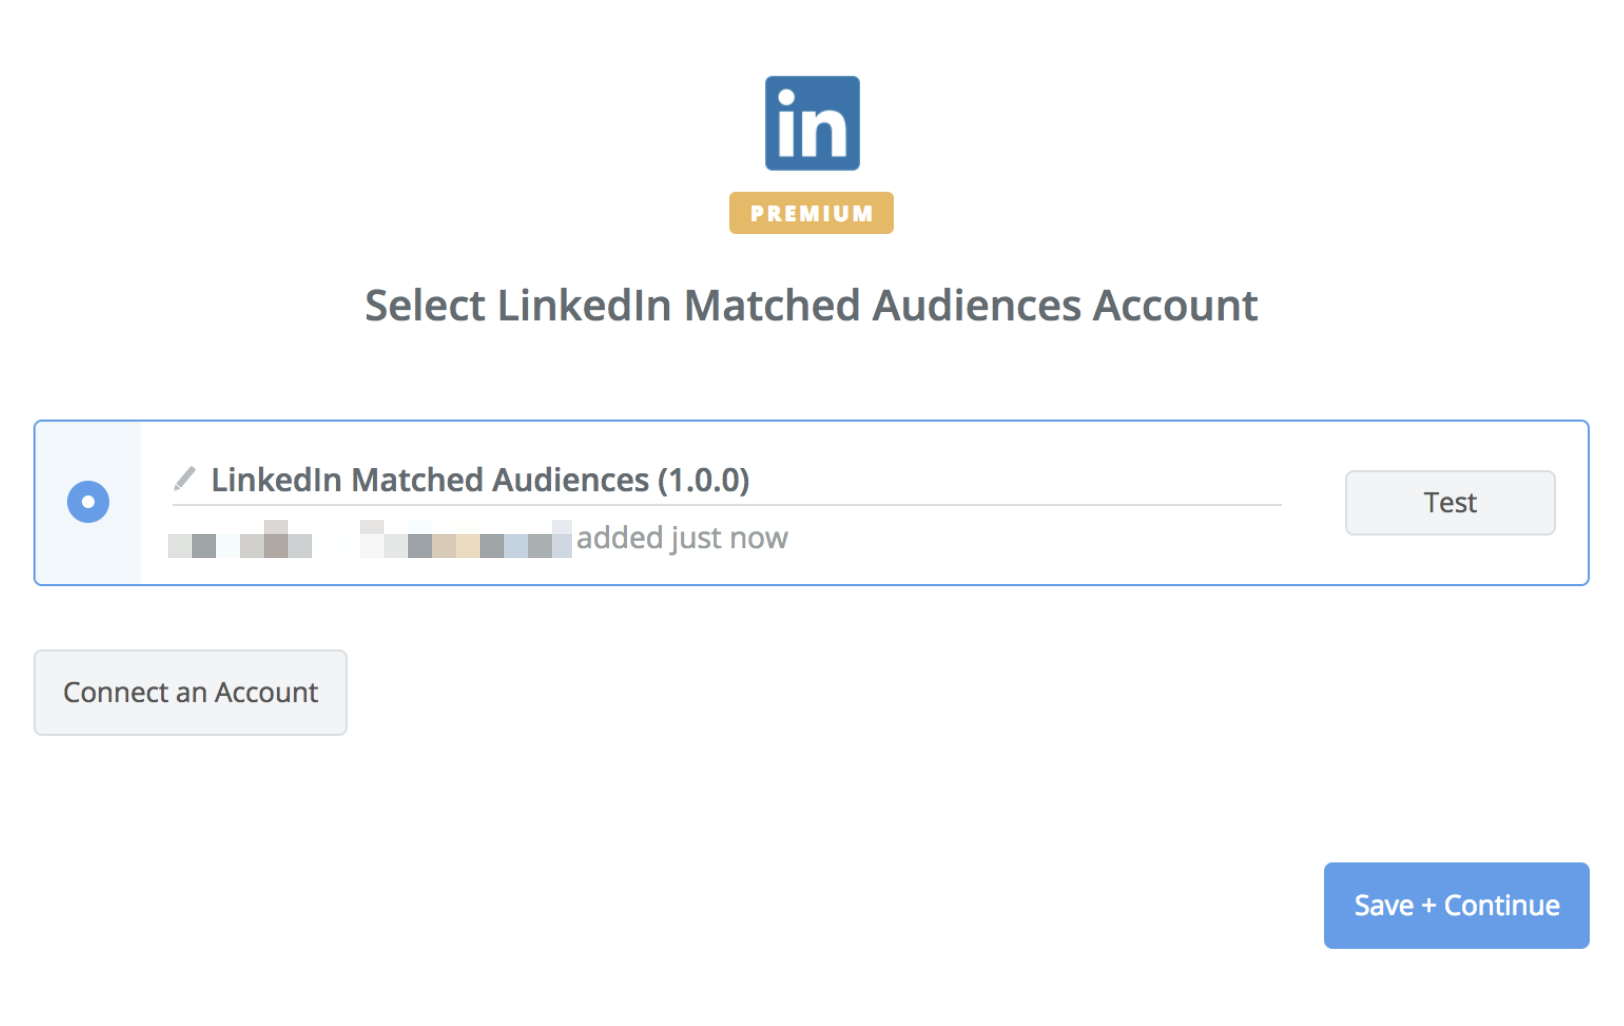 LinkedIn Matched Audiences connection successfull